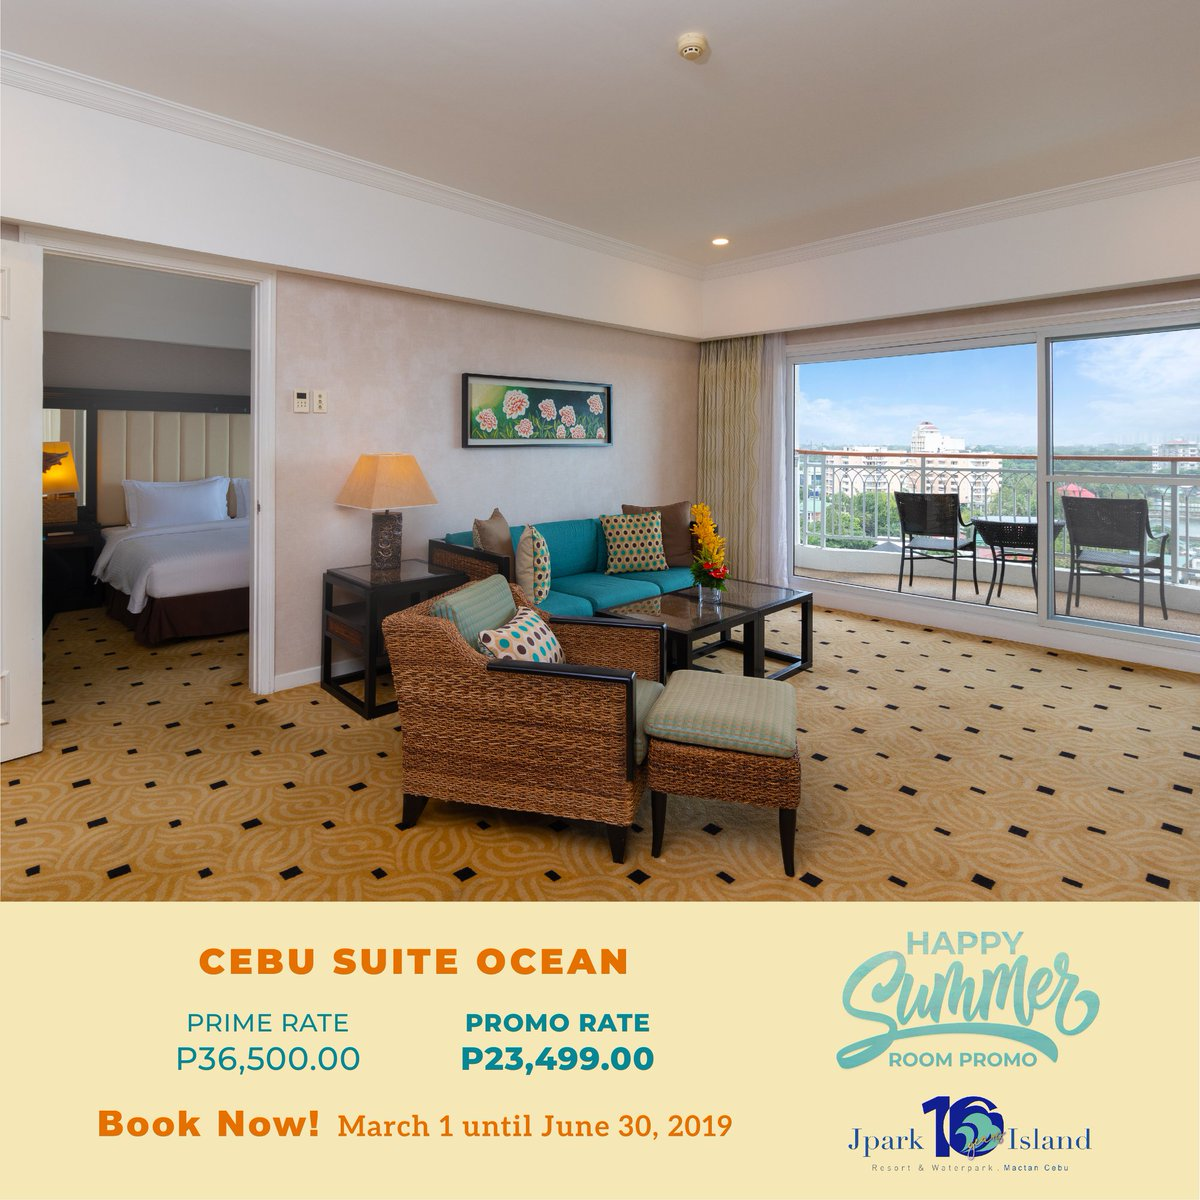 Live luxuriously while having fun when you stay at either the Cebu Suite or Cebu Suite Ocean!  Use the promo code SUMMER to avail our discounted rates!  For more details, click here: https://t.co/atg2VLnEHd  #MyJparkStory #WaterYouWaitingFor  #TenYearsOfJpark https://t.co/UCElHHnhSr